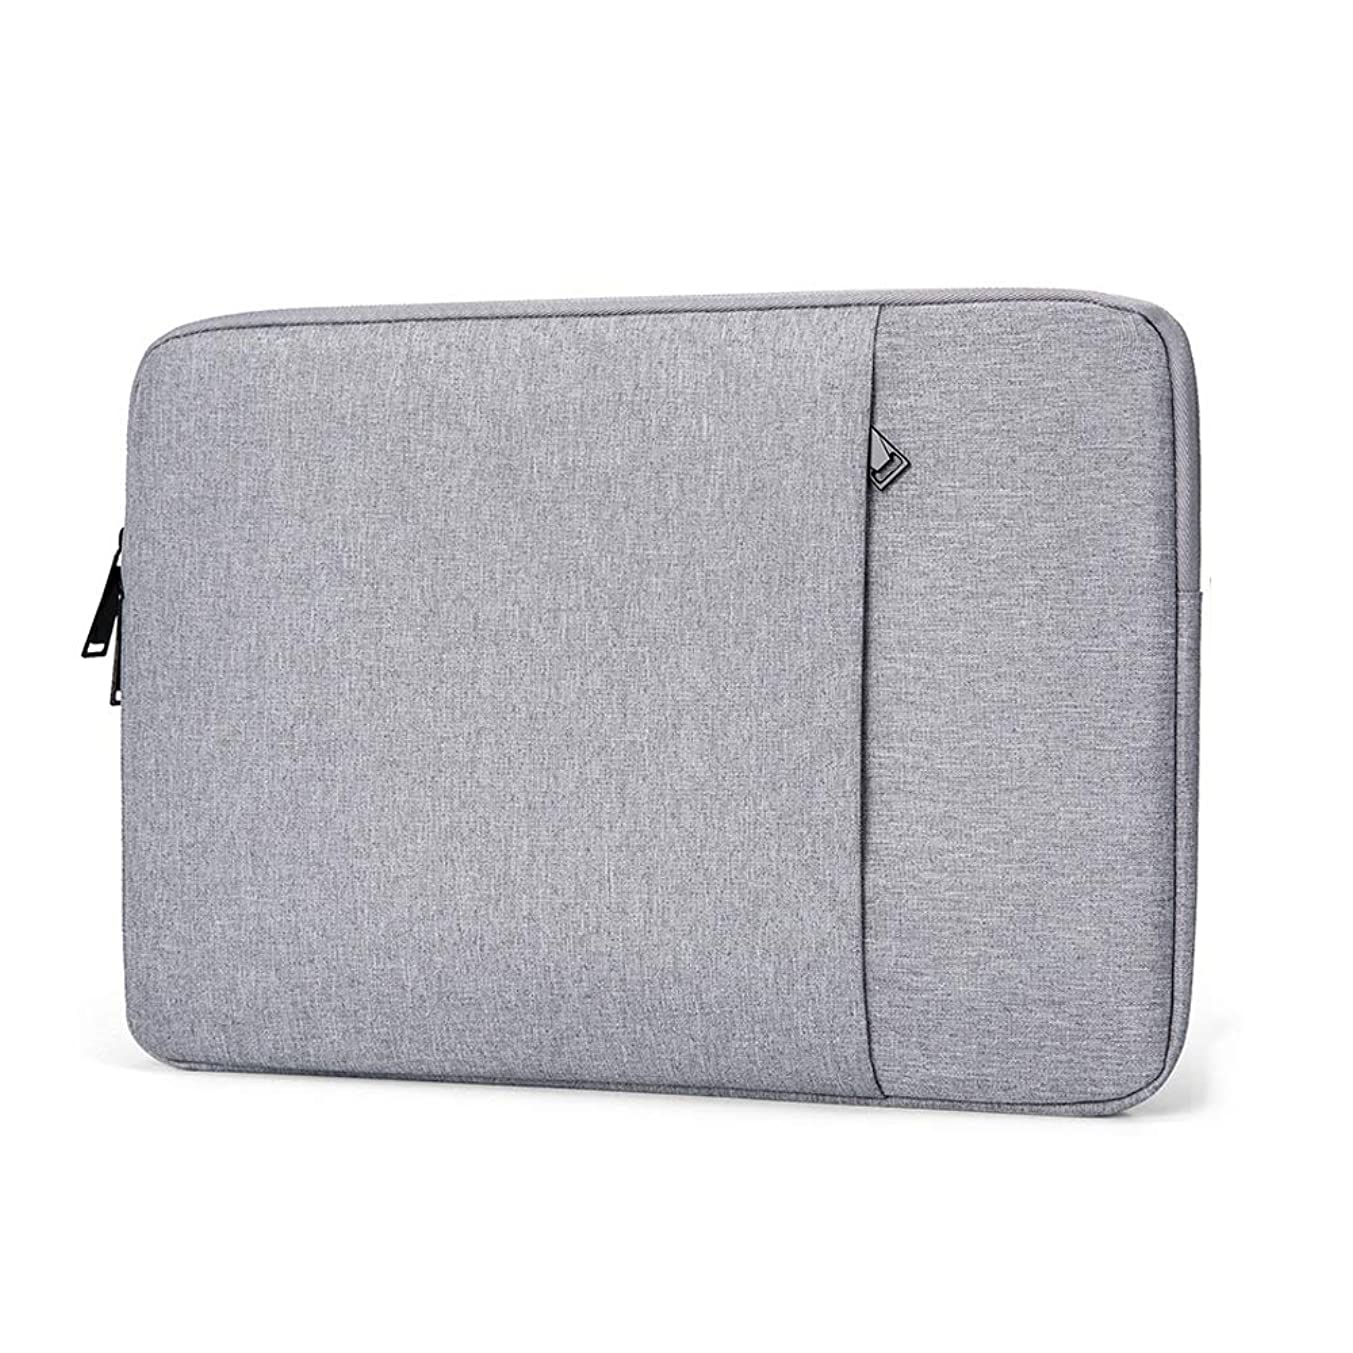 imComor 11.6-12 Inch Laptop Sleeve Case Waterproof Tablet Briefcase Carrying Bag for Acer Chromebook R11/HP Stream 11/Samsung Chromebook 11.6/MacBook Air 11/ Dell ASUS HP Chromebook 11.6 Notebook Bag